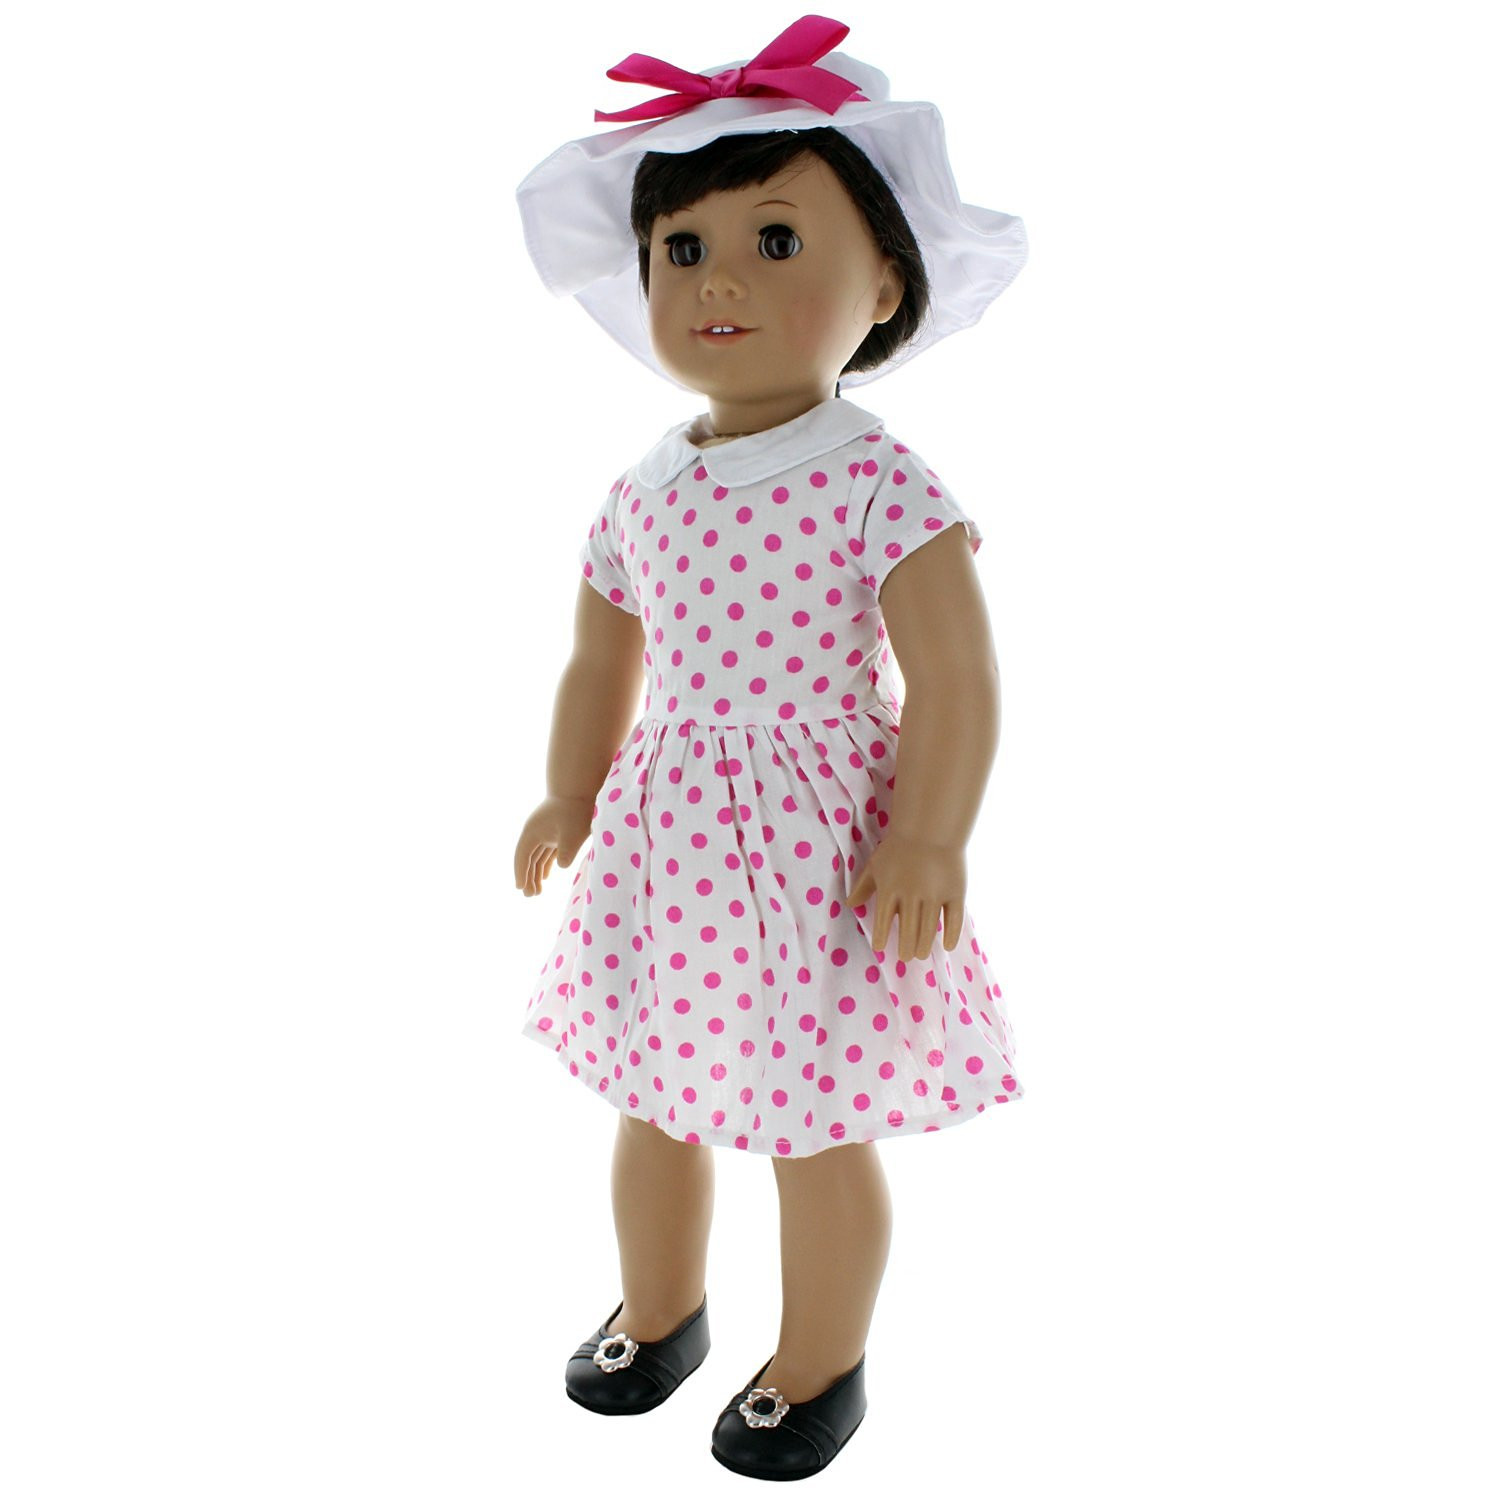 60's Style Dress Outfit Doll Clothes Accessories Fits American Girl My Generation & Other... by